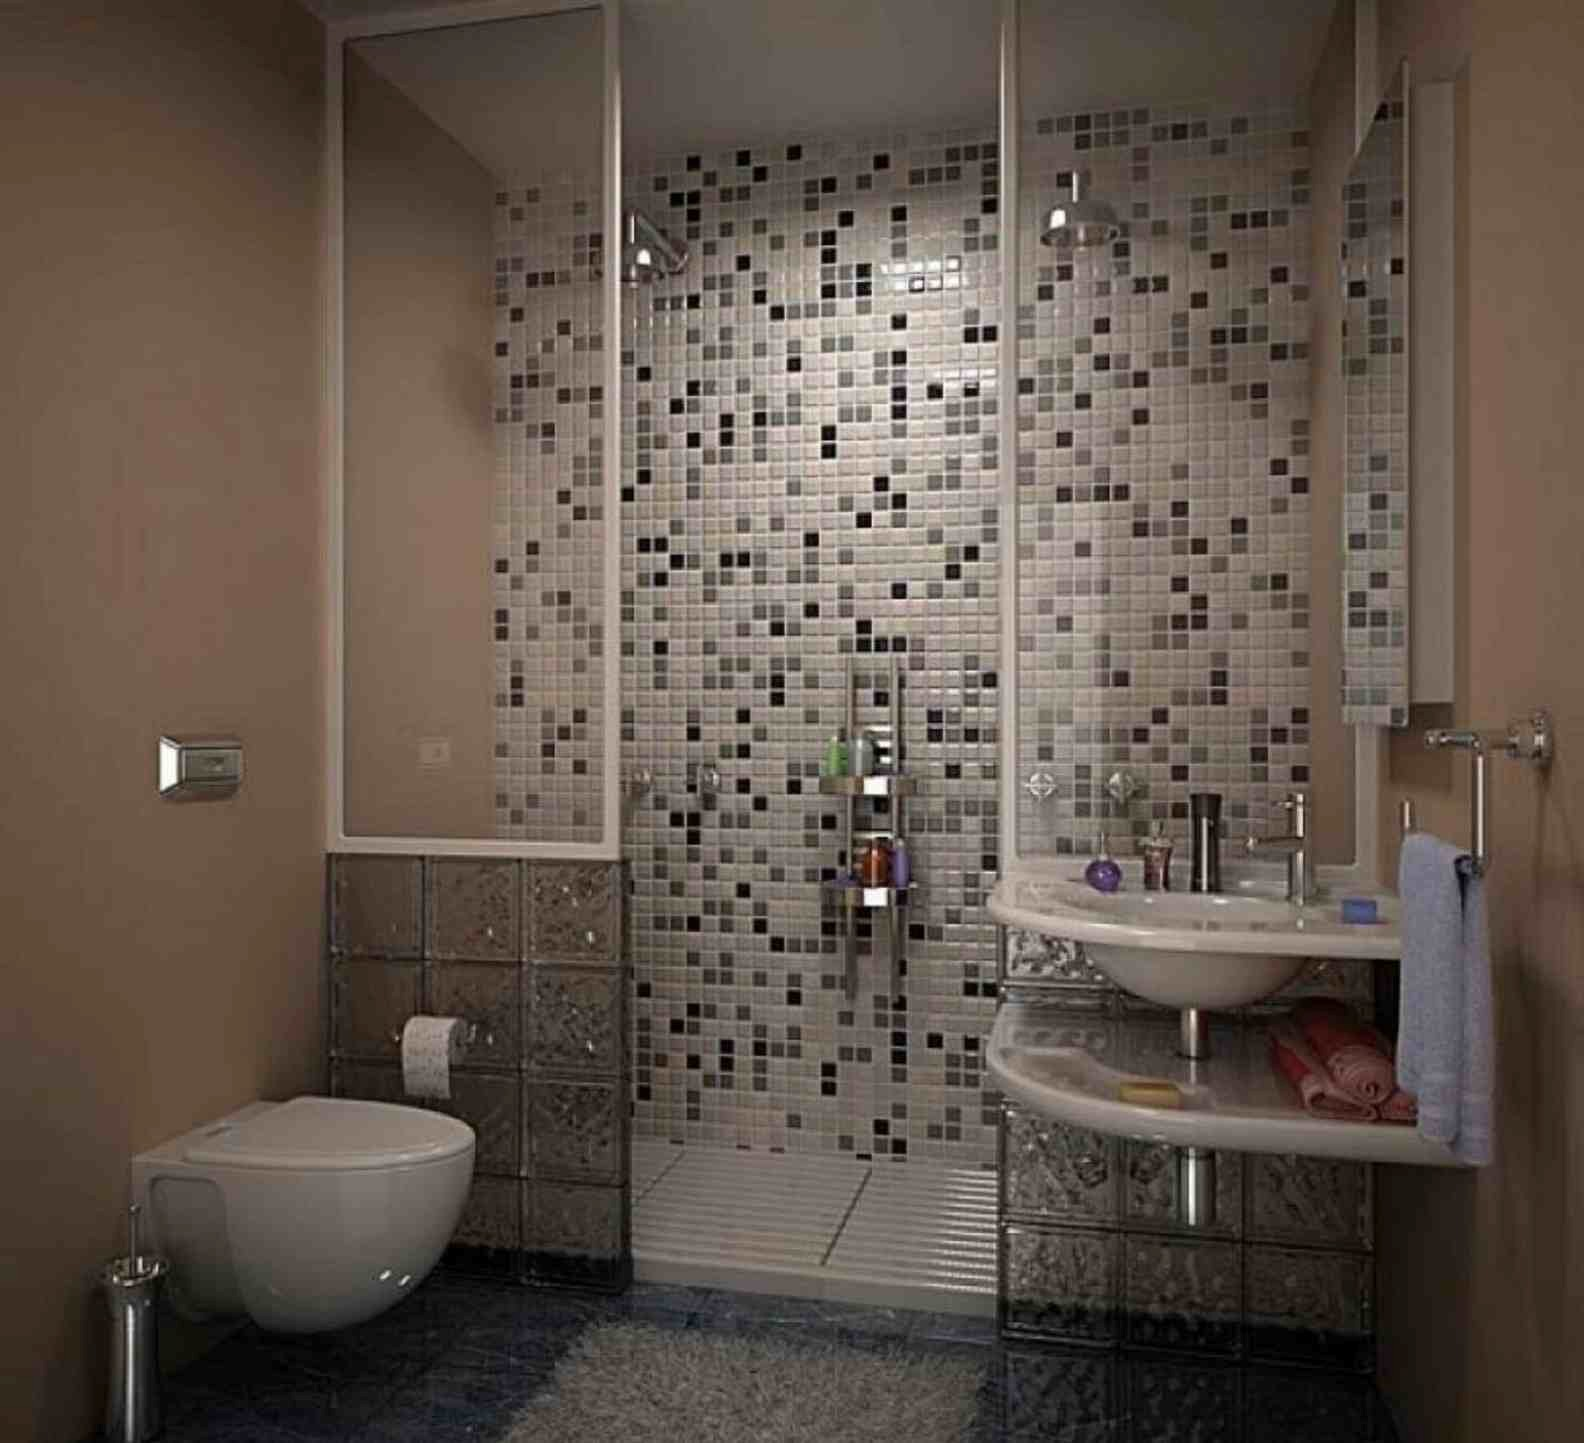 Bathroom Tiles Design Fantastic Nice Tile Ideas for Small Bathrooms Tile Ideas for Small Bathrooms Pattern